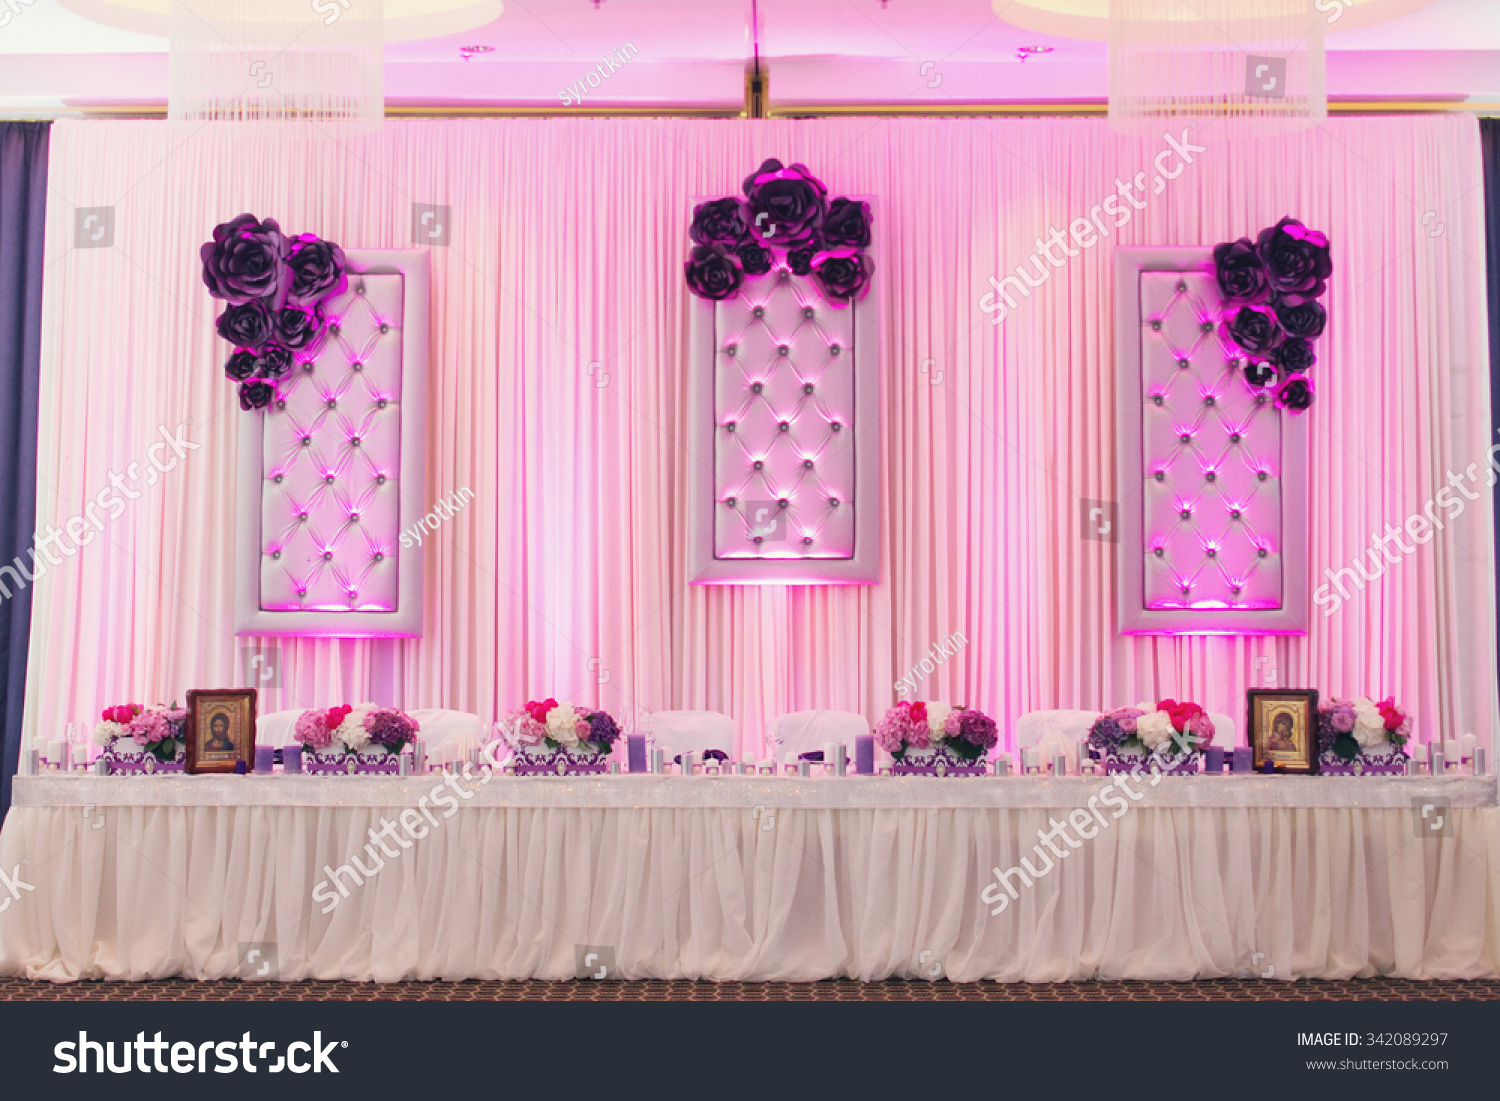 Luxury Stylish Wedding Reception Purple Decorations Stock Photo ...